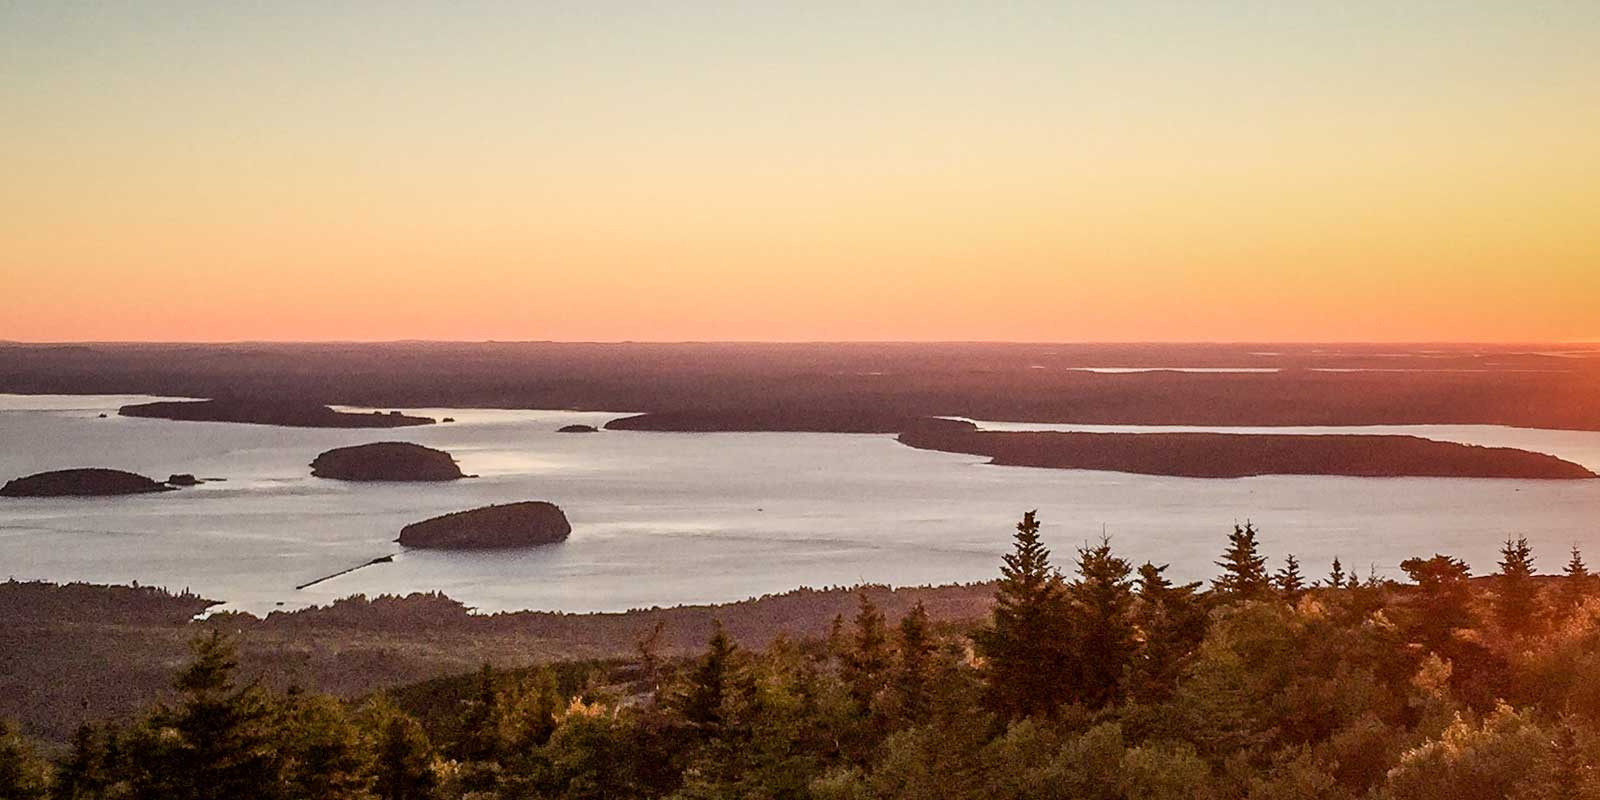 Landscape view looking down on the Porcupine Islands from the top of Cadillac Mountain during sunrise.